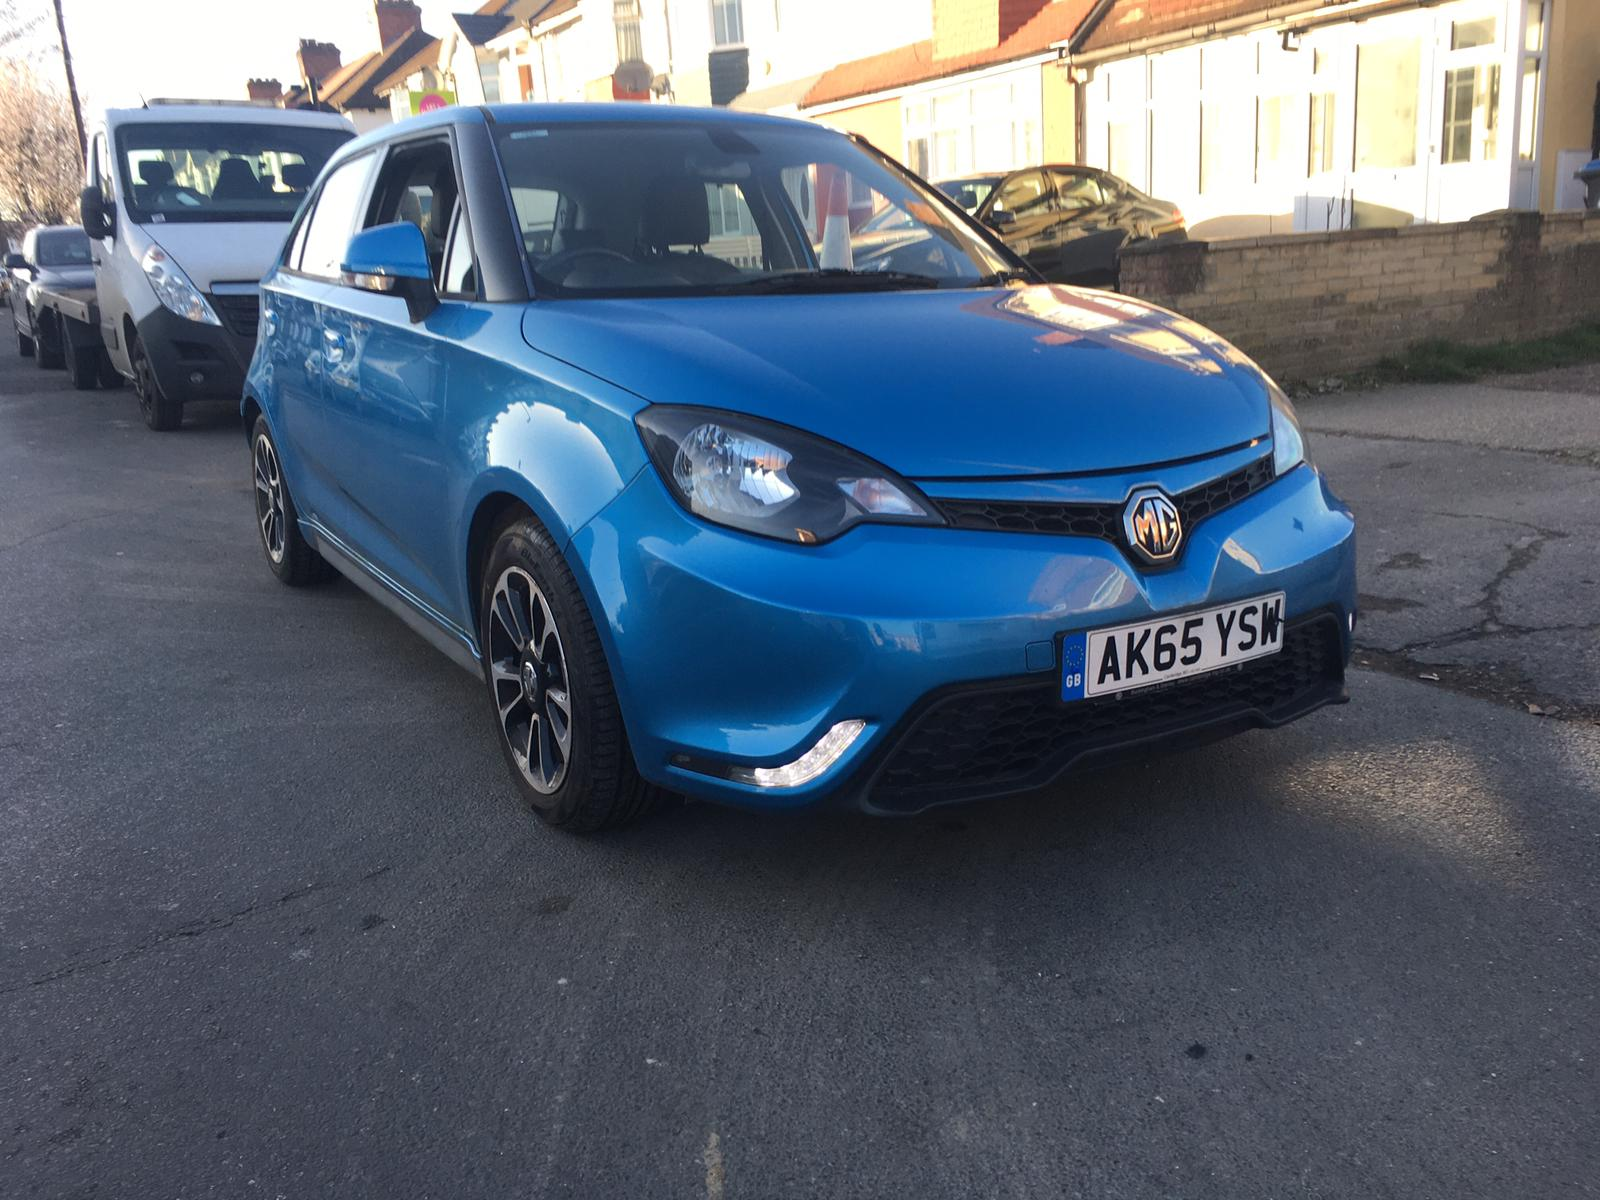 sold Mg 3 style